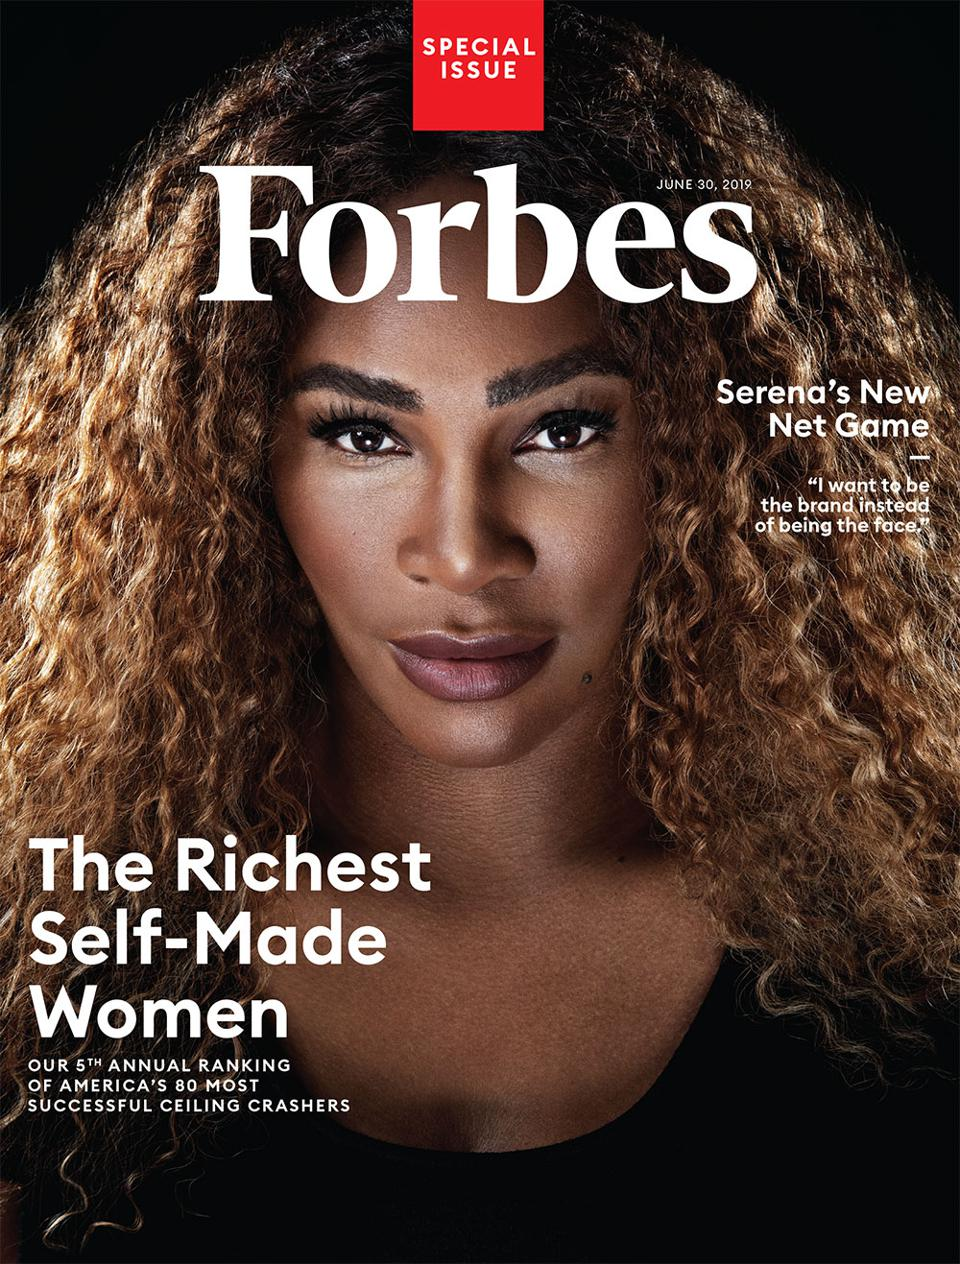 Forbes redesigned magazine - June 30, 2019